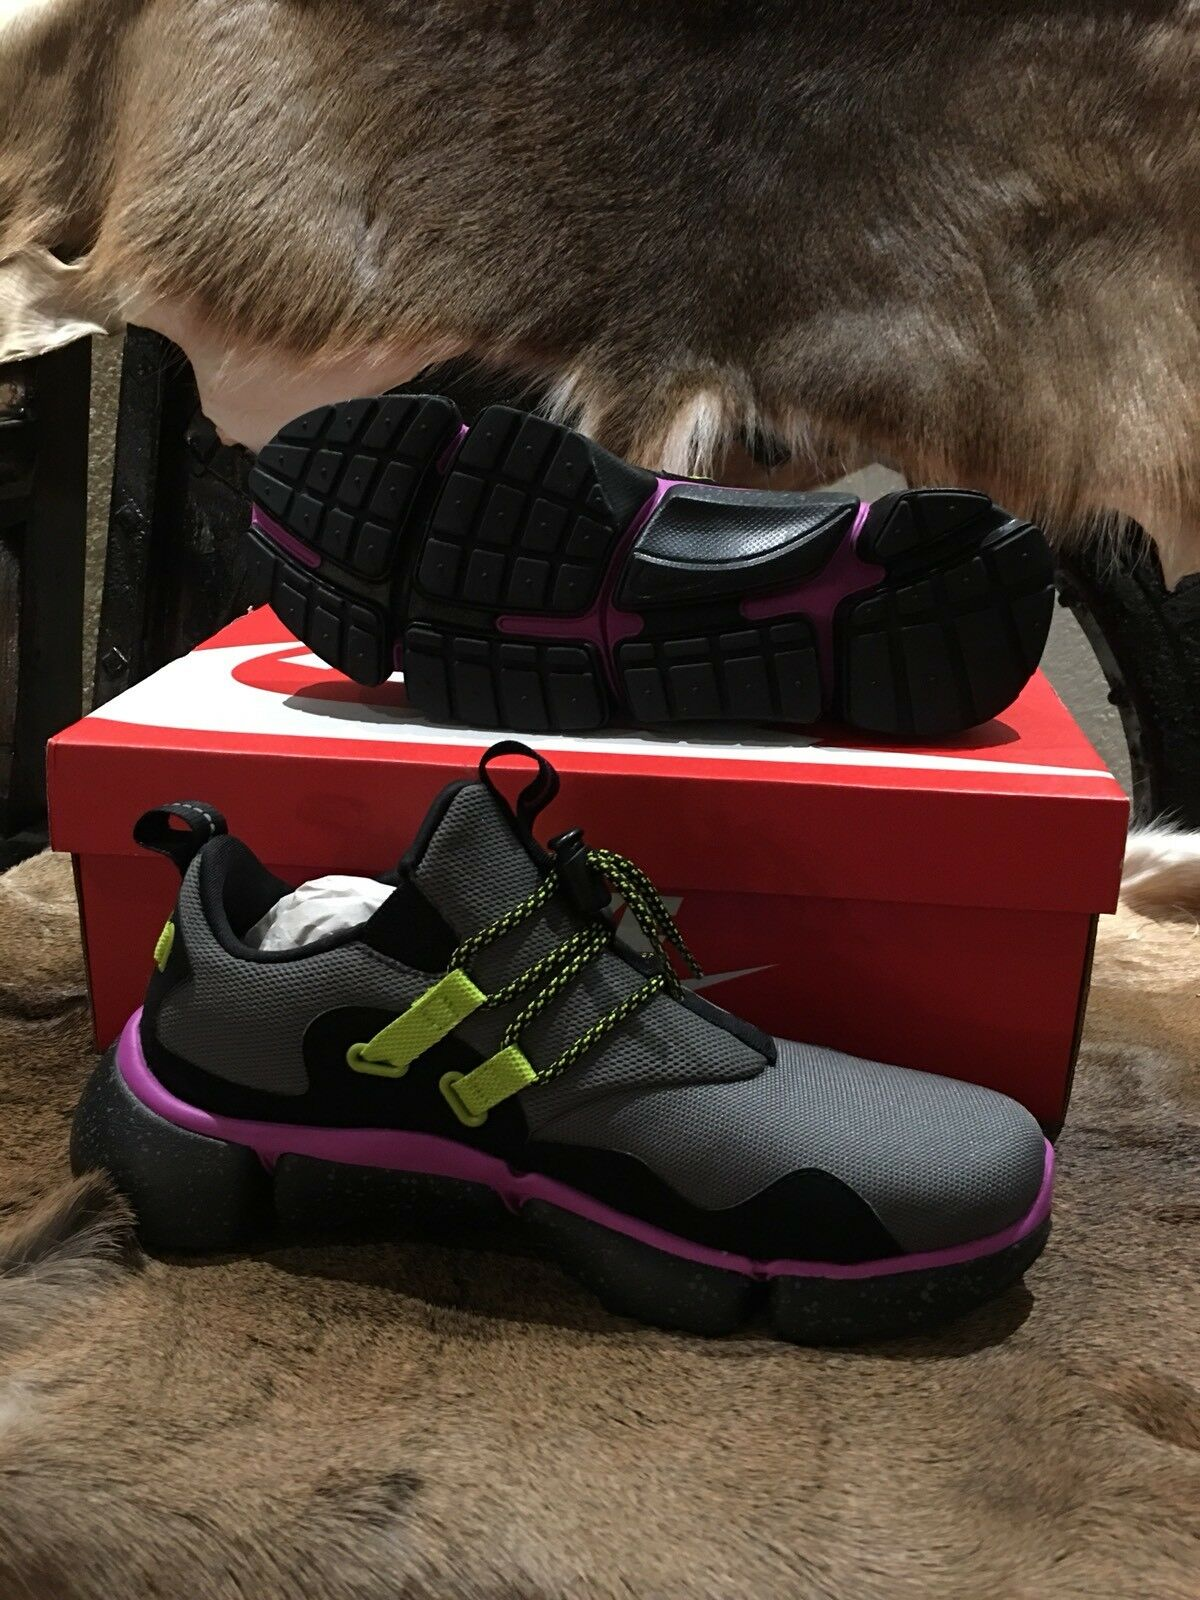 Price reduction Wild casual shoes New shoes for men and women, limited time discount